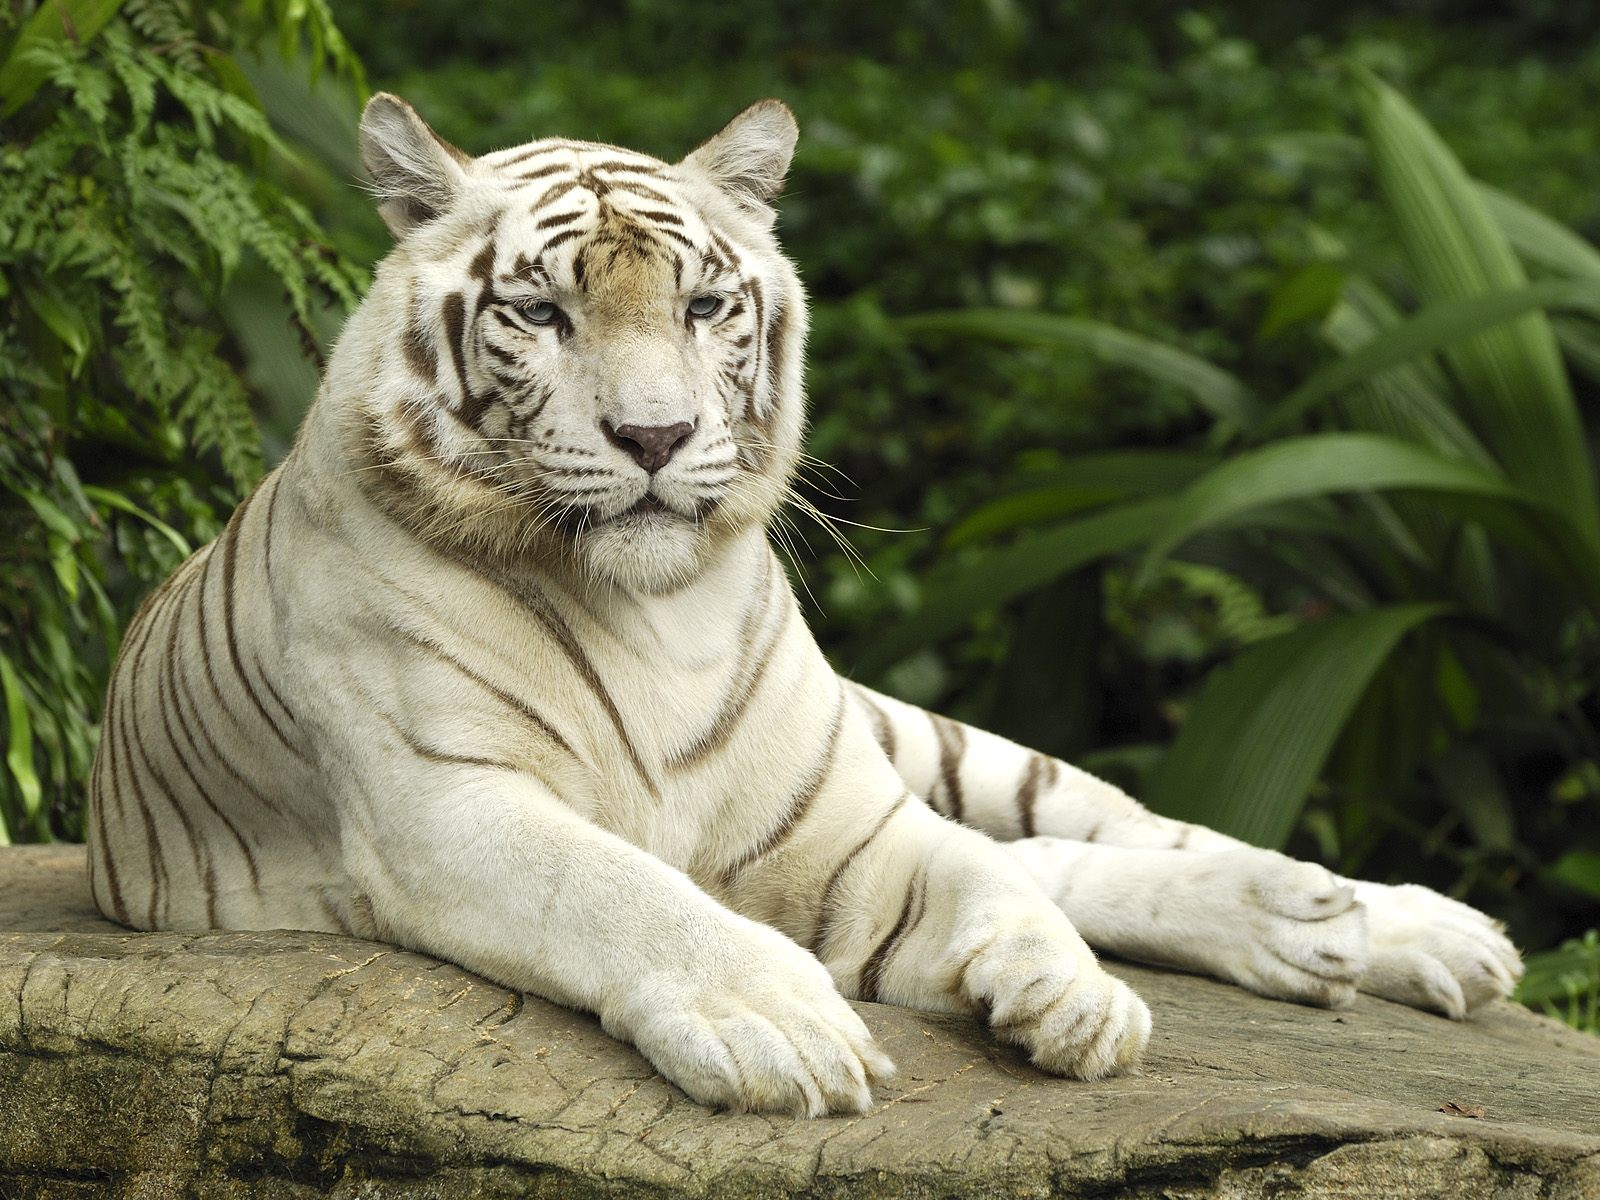 Beautiful And Dangerous Animals Birds Hd Wallpapers: White Tigers Beautiful Latest Hd Pictures/Wallpapers 2013